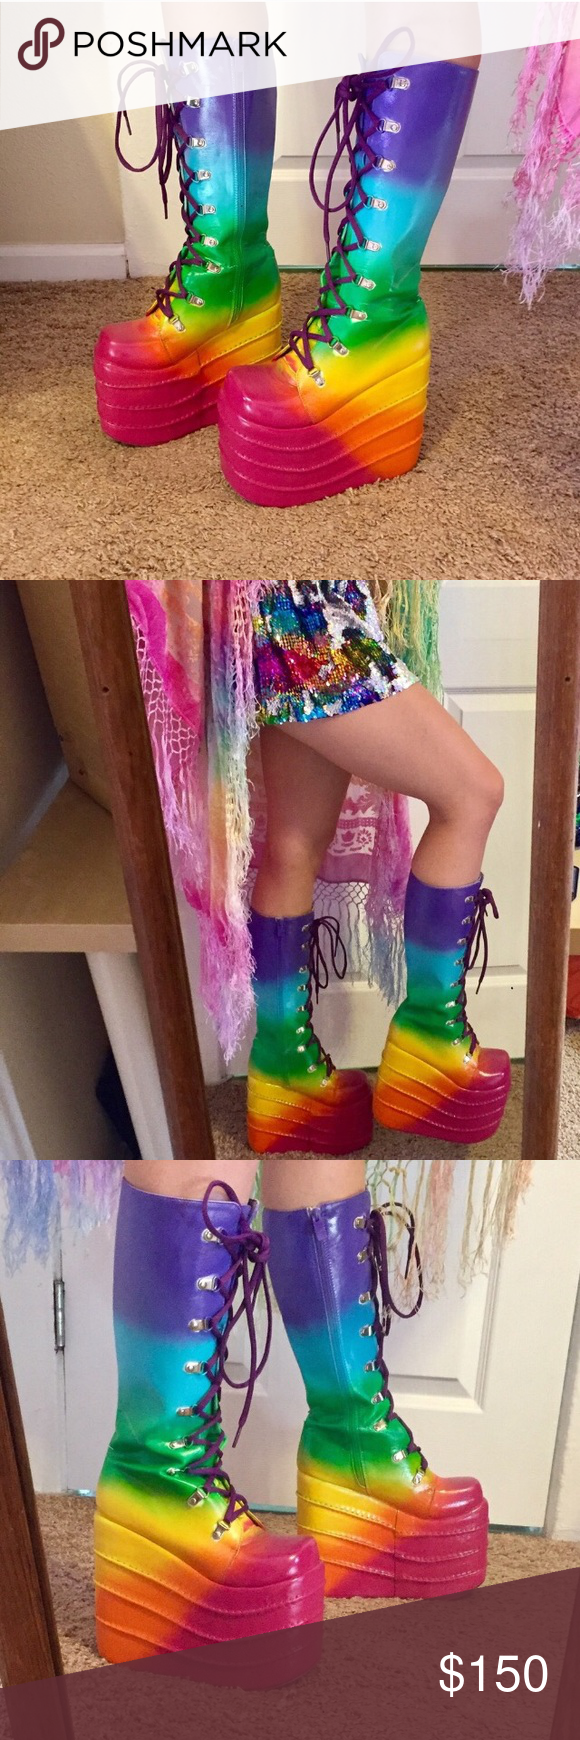 9e93906e0c9 Rainbow platform boots rave festival gogo shoes Gorgeous hand painted platform  boots! I painted these for myself for insomniac rave events. purple laces